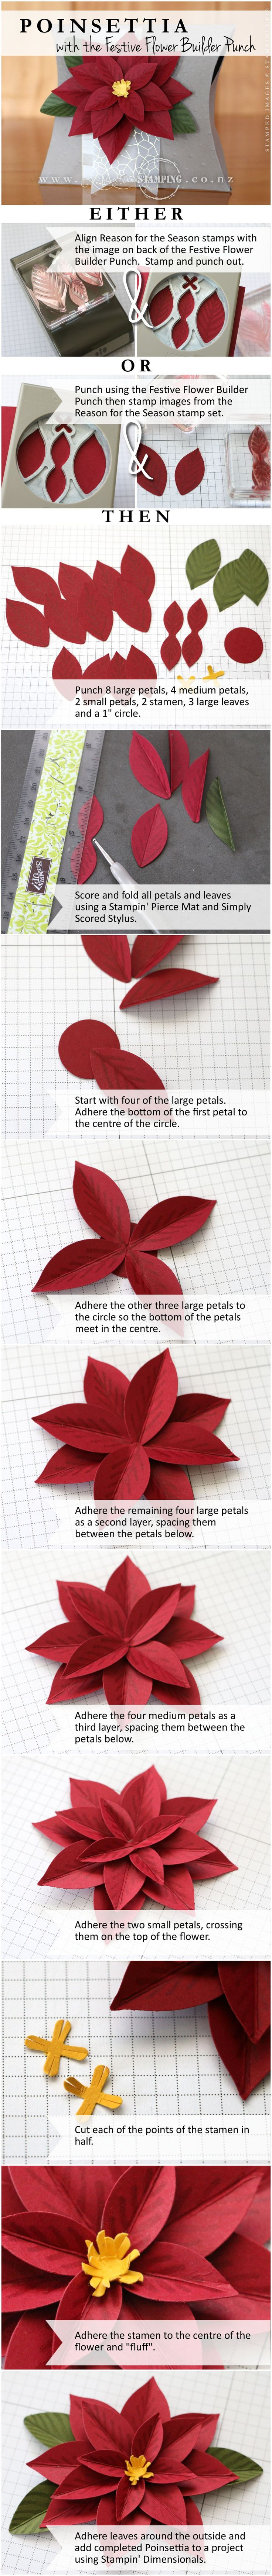 Create a Christmas Poinsettia with the Festive Flower Builder Punch and coordinating Reason for the Season stamp set. http://www3.stampinup.com/ECWeb/ProductDetails.aspx?productID=140847&dbwsdemoid=4002741 | www.creativestamping.co.nz | Stampin' Up! | 2015 Holiday Catalogue